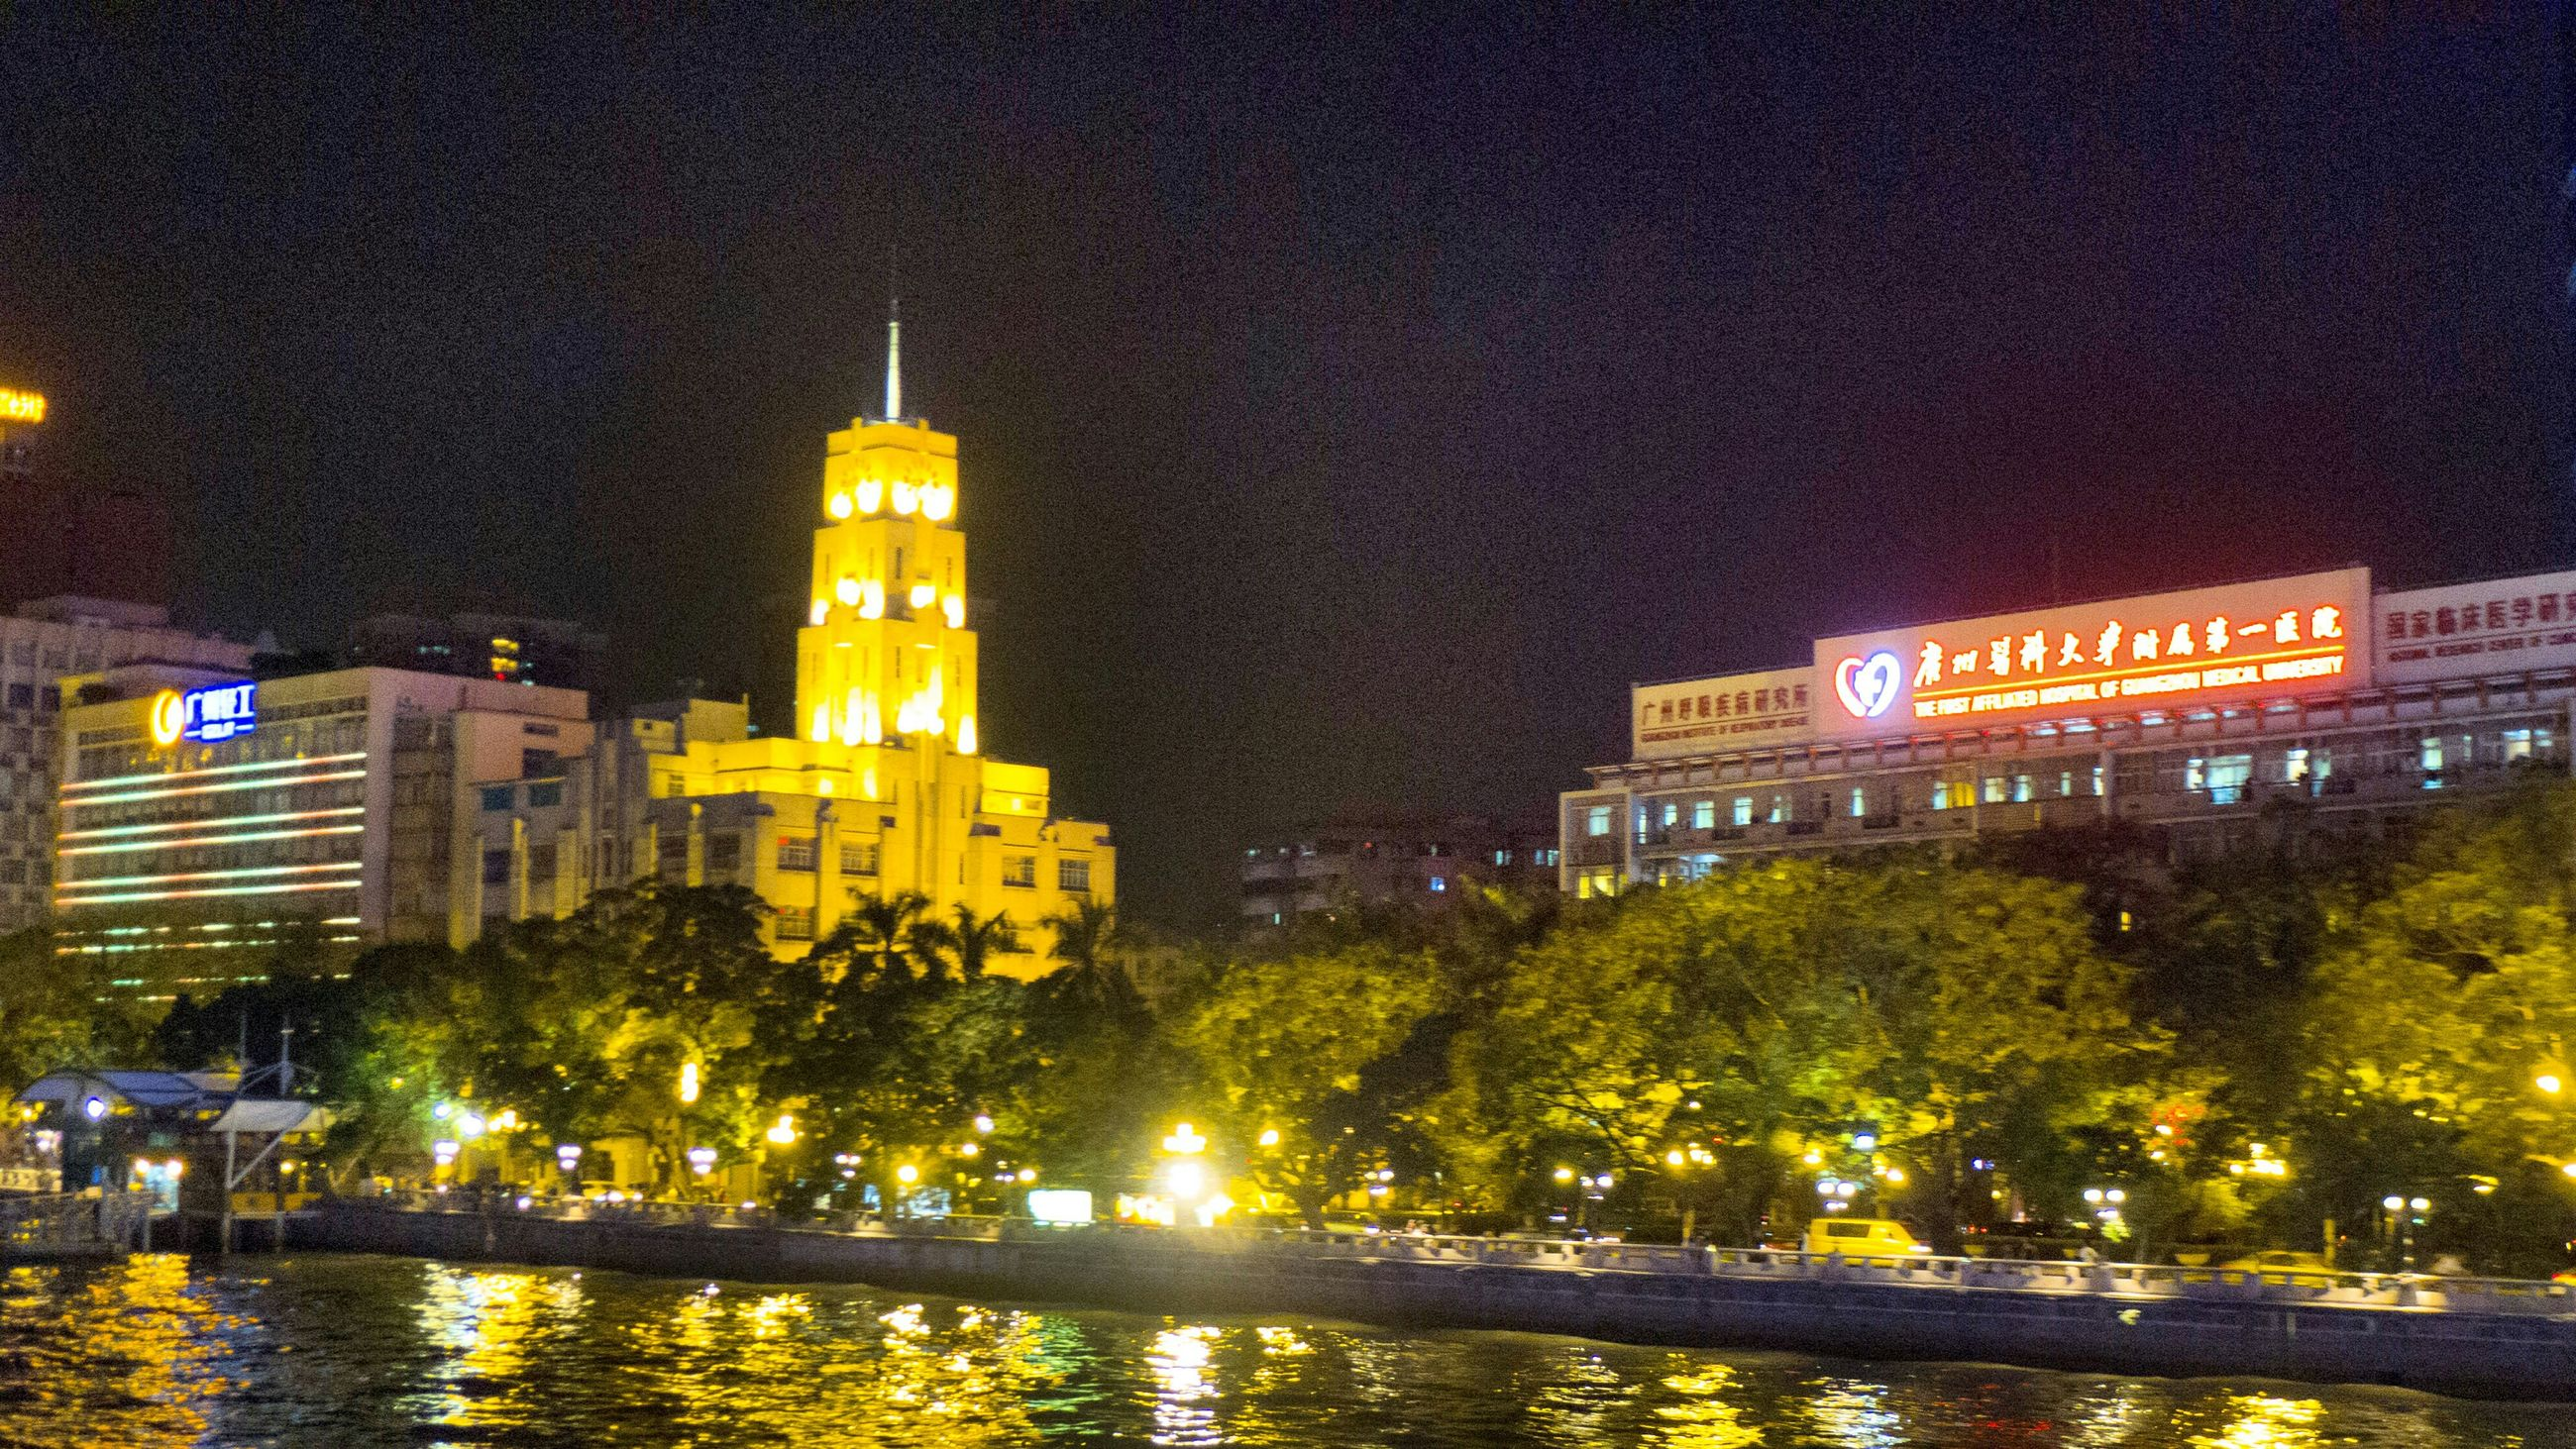 architecture, building exterior, built structure, illuminated, night, city, water, tower, reflection, waterfront, tall - high, travel destinations, river, sky, skyscraper, city life, famous place, tree, capital cities, clock tower